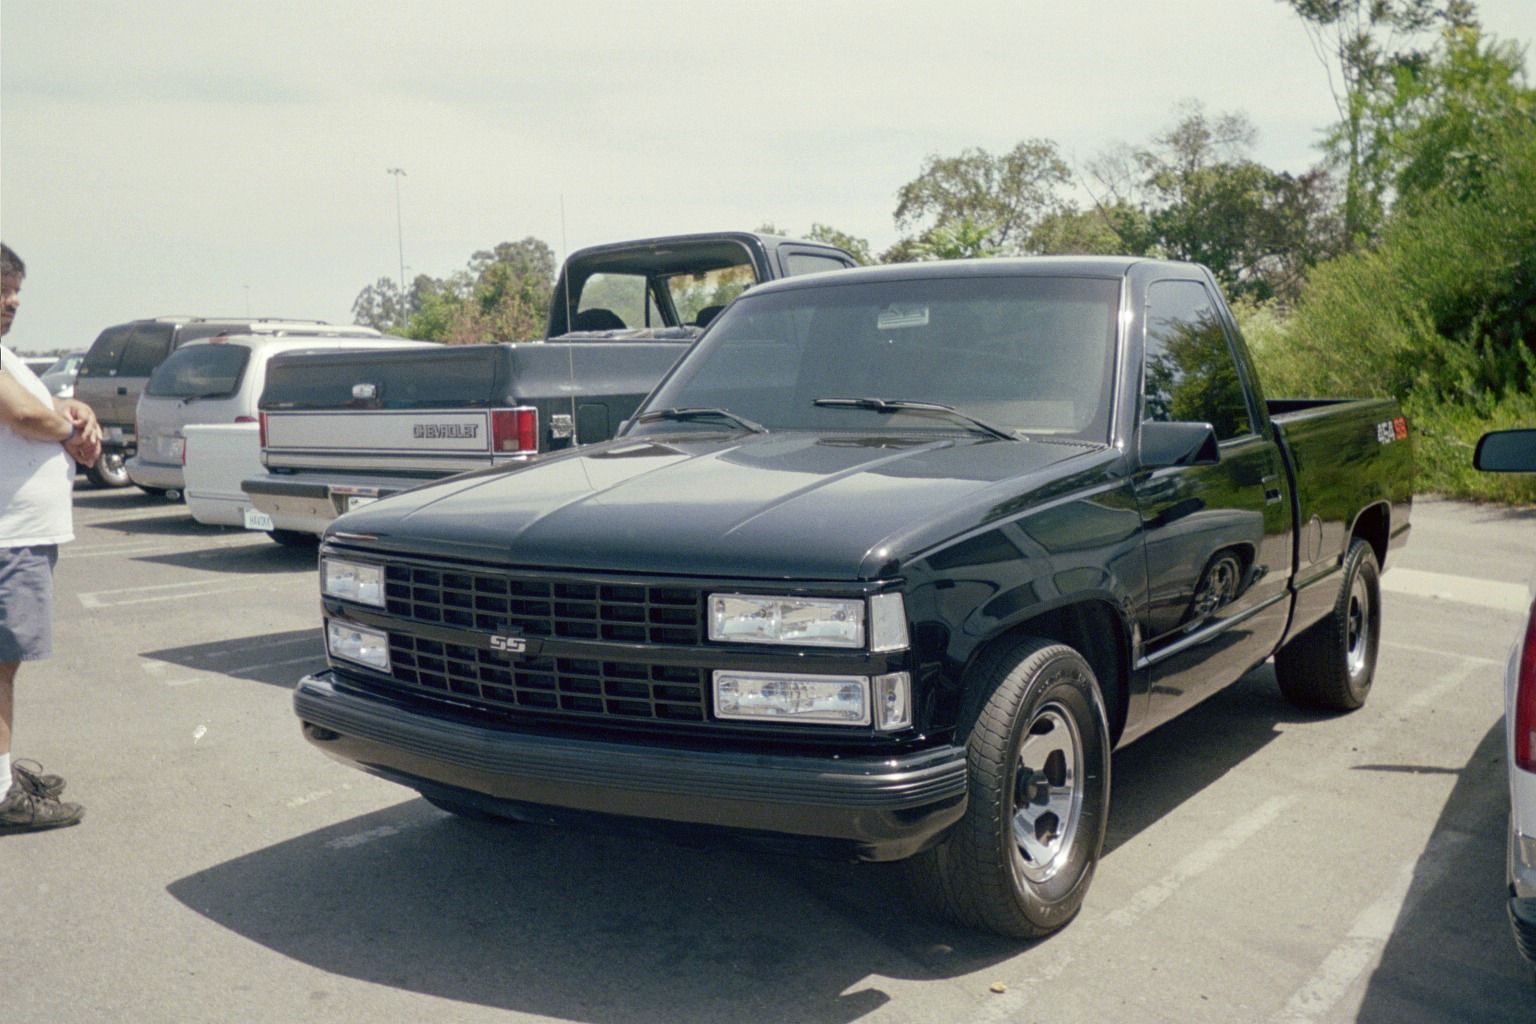 All Chevy 1991 chevy 454 ss for sale : 454ss | 454 SS, 454SS, BLACK, CHEVY, OUTSIDE, PICKUP, SHOW, TRUCK ...